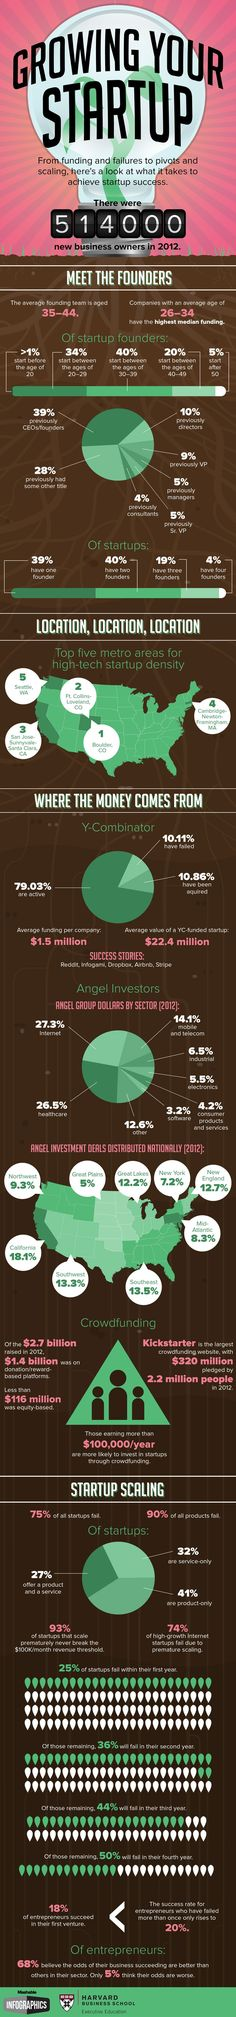 An infographic examining some of the factors that contribute to startup success.